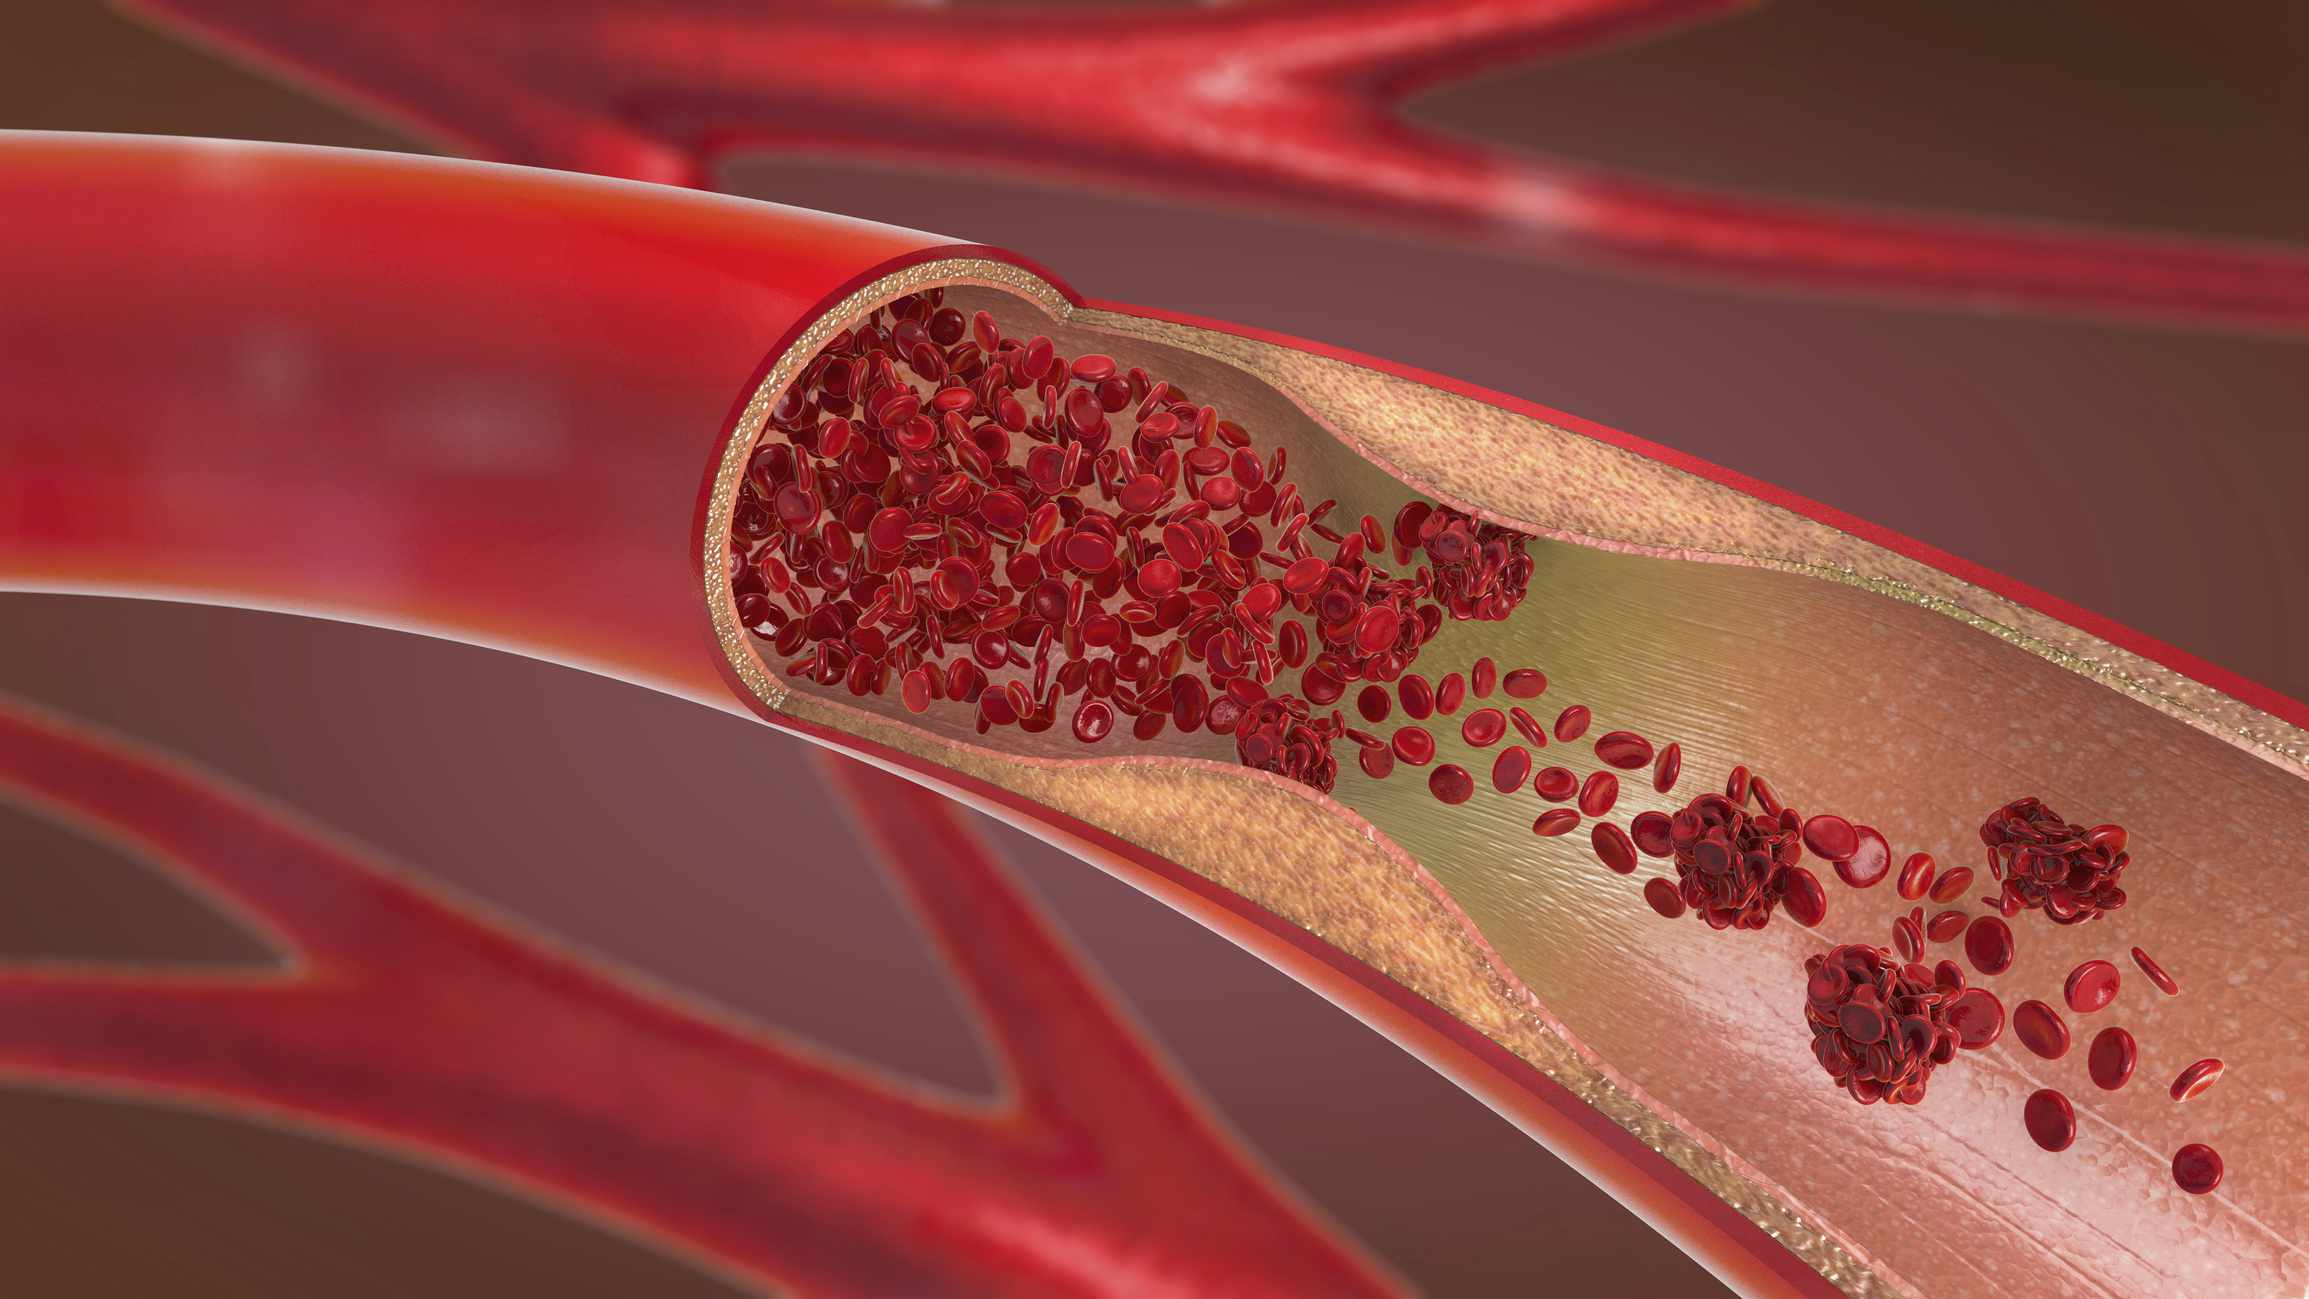 Disease inside blood vessels can have effects on health